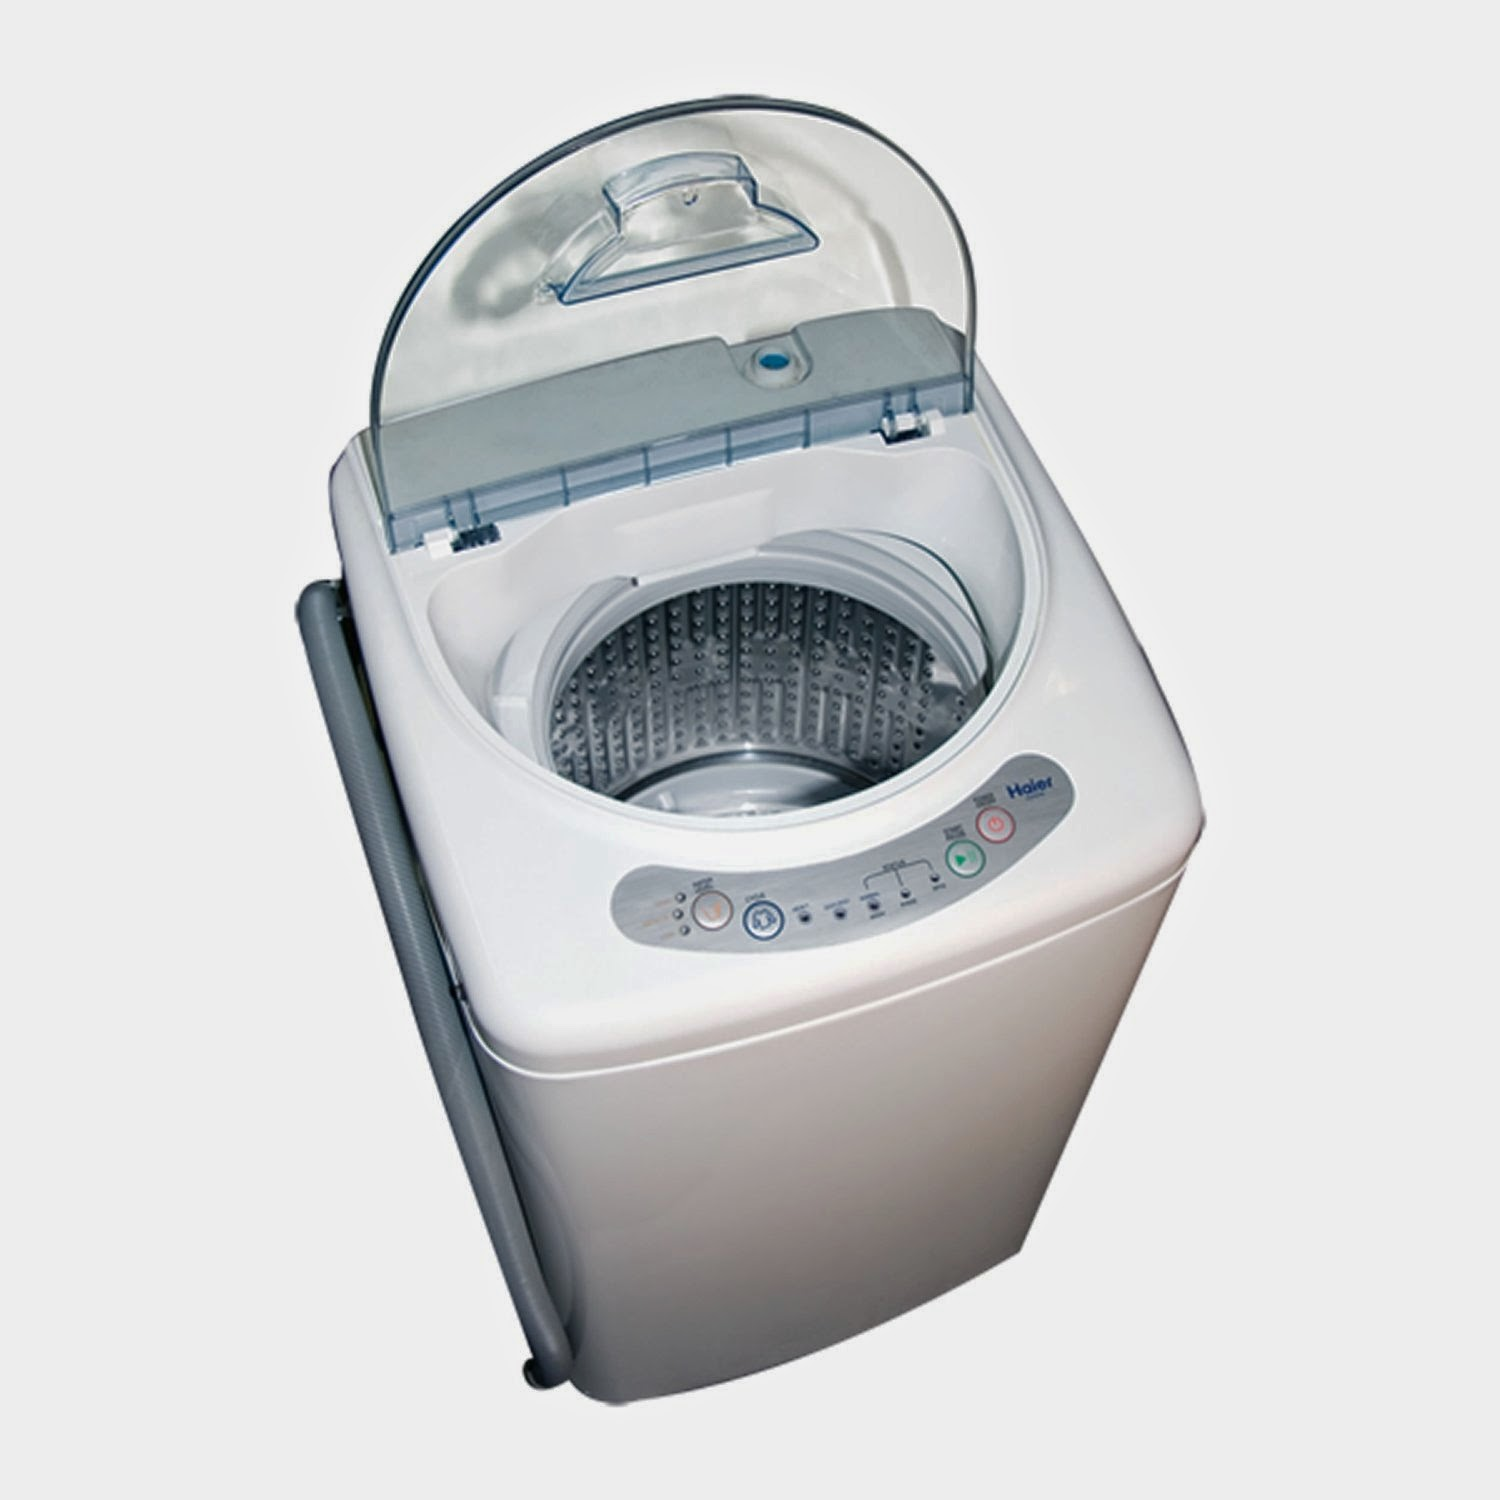 Apartment Washer And Dryer: Stackable Washer And Dryer